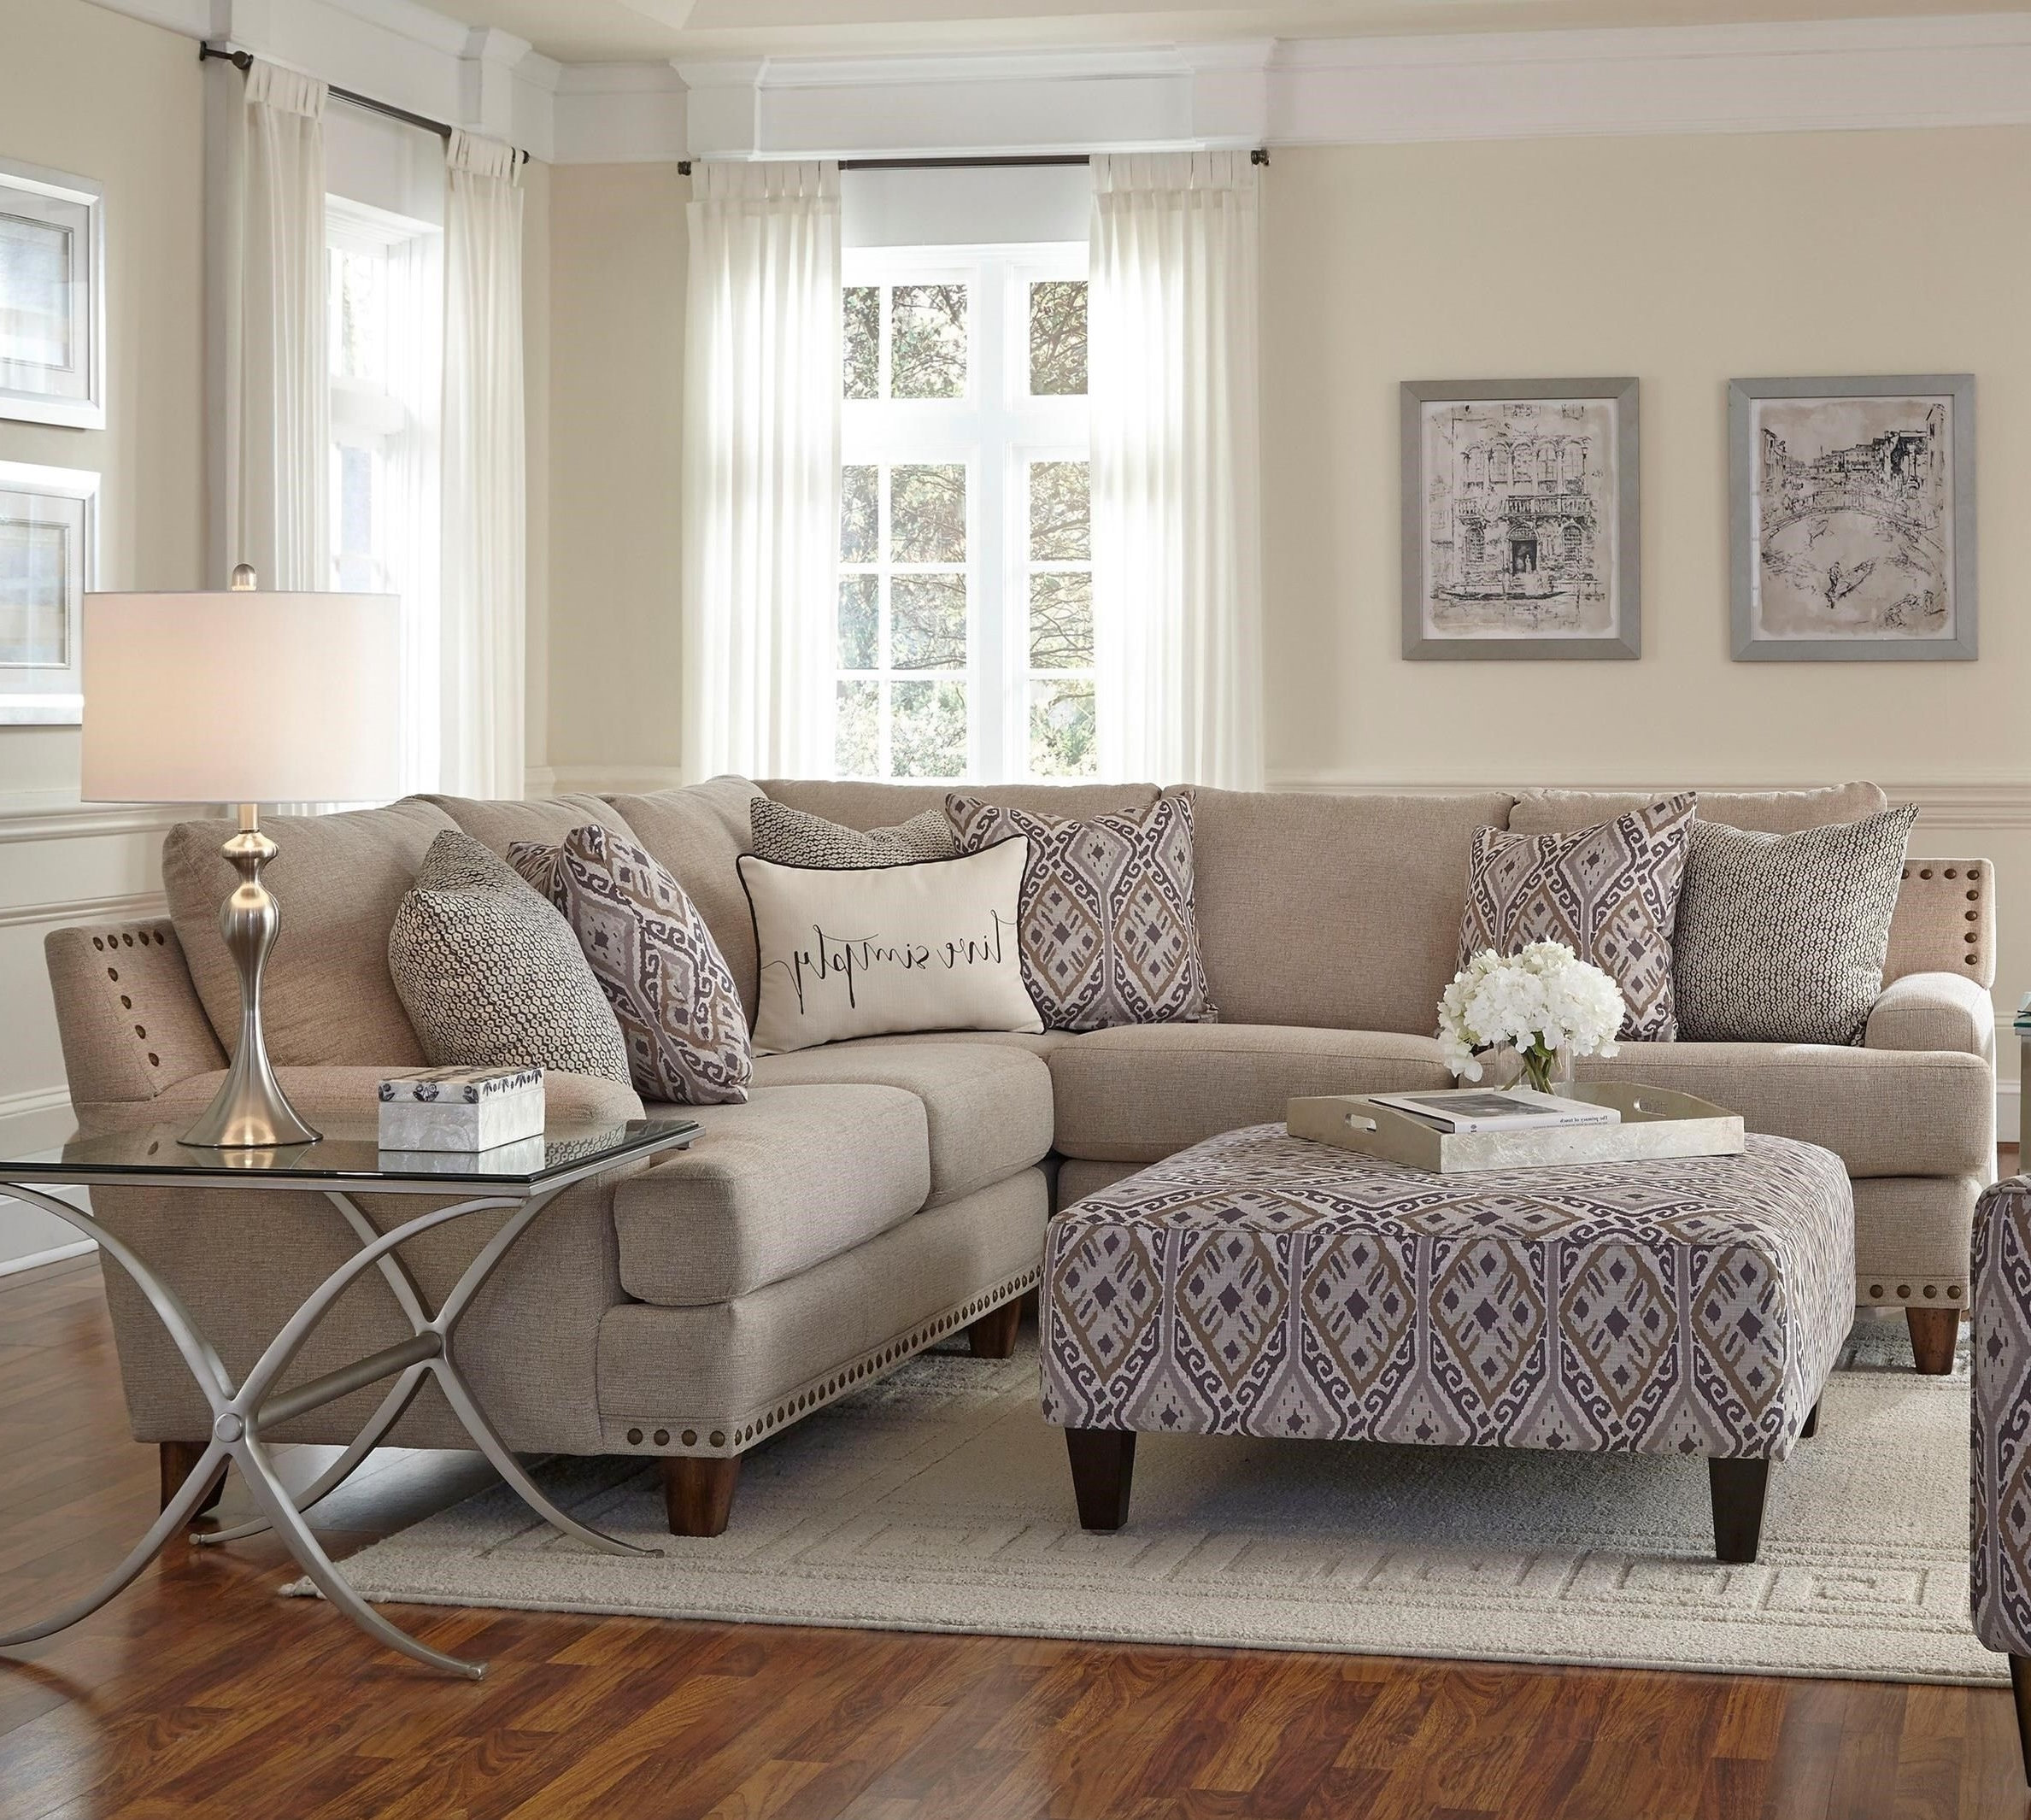 2018 Franklin Julienne Sectional Sofa With Four Seats – Miskelly In Jackson Ms Sectional Sofas (View 1 of 20)